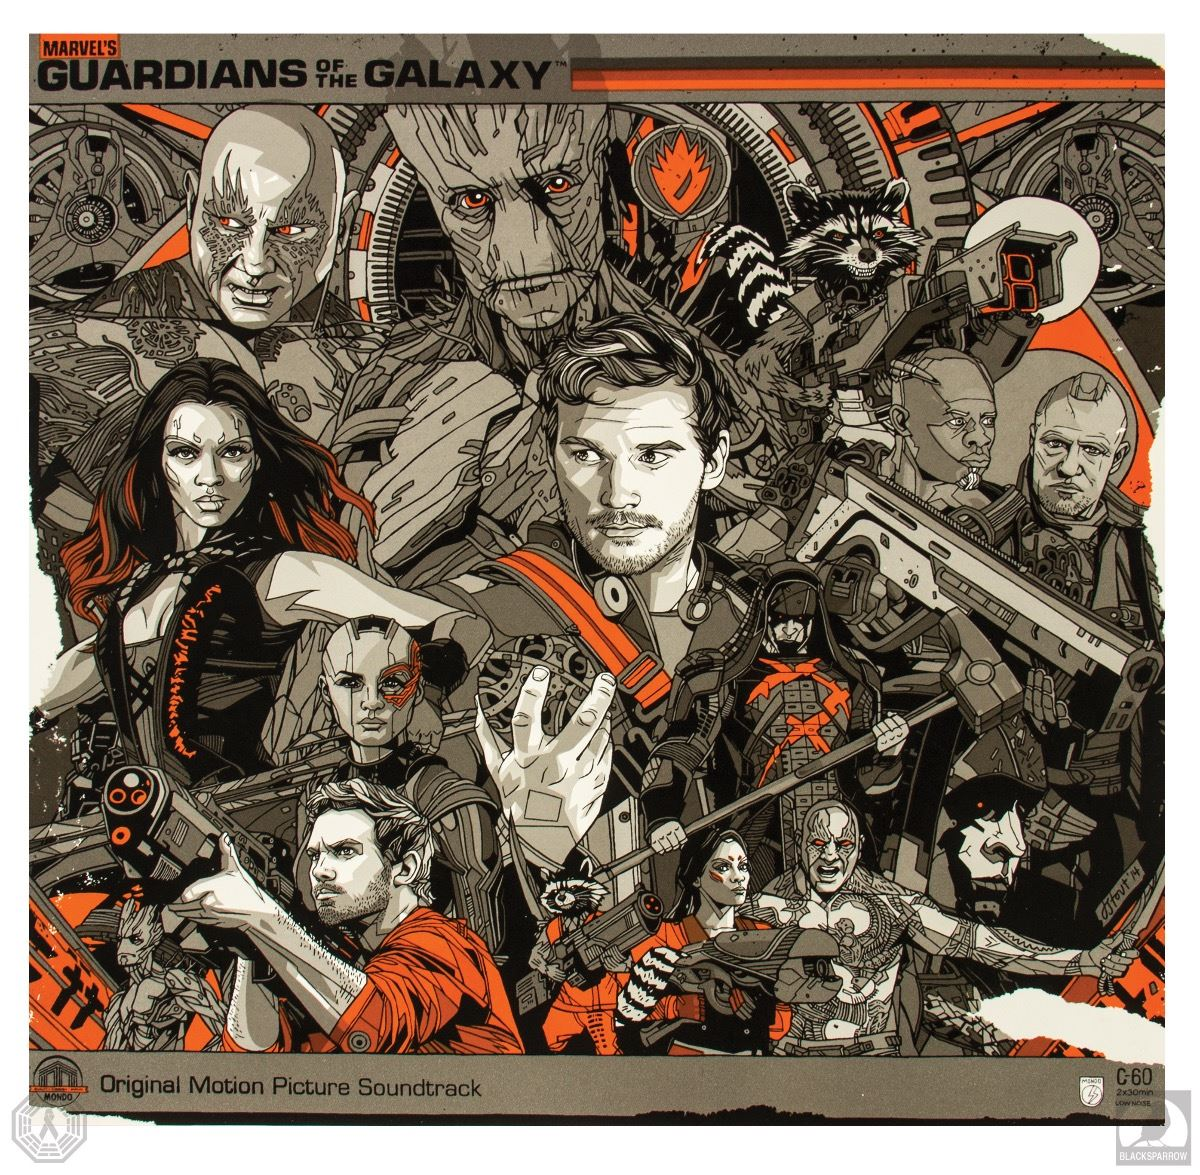 marvel guardians of the galaxy limited edition vinyl record mondo lp awesome mix vol 1